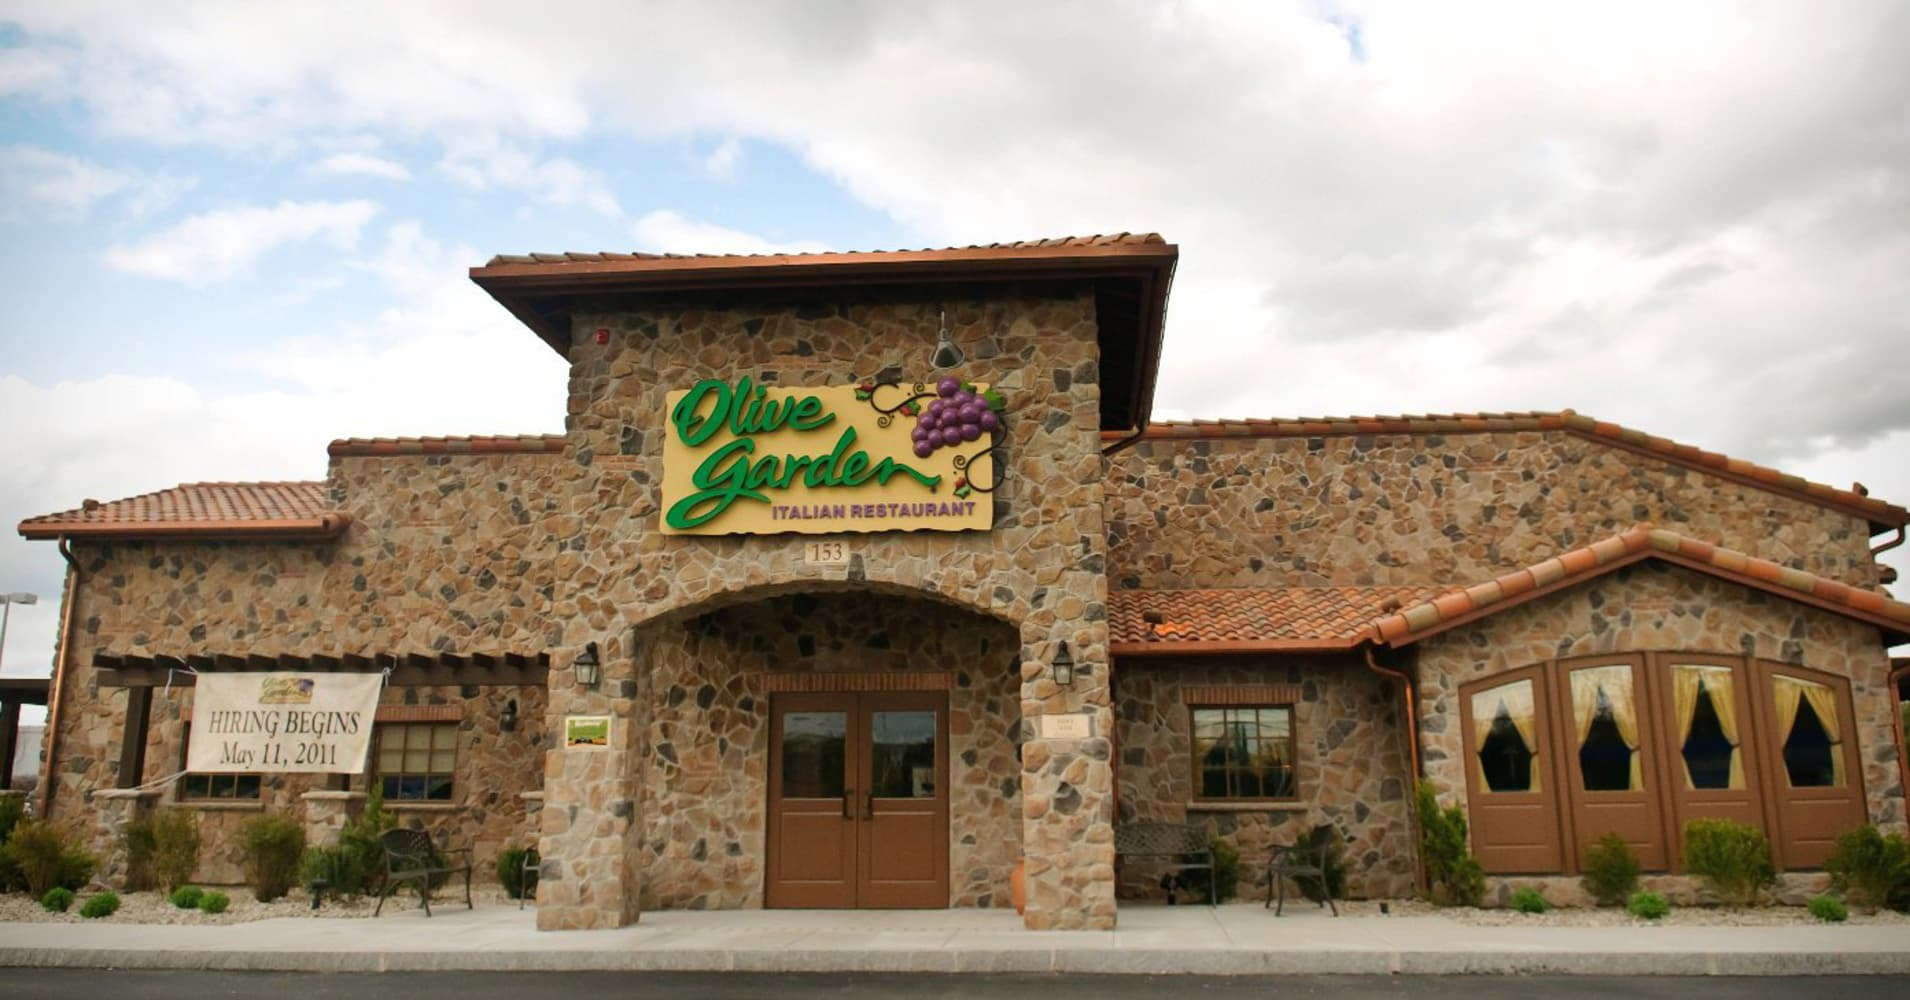 Olive Garden: $100 for 7 weeks of pasta